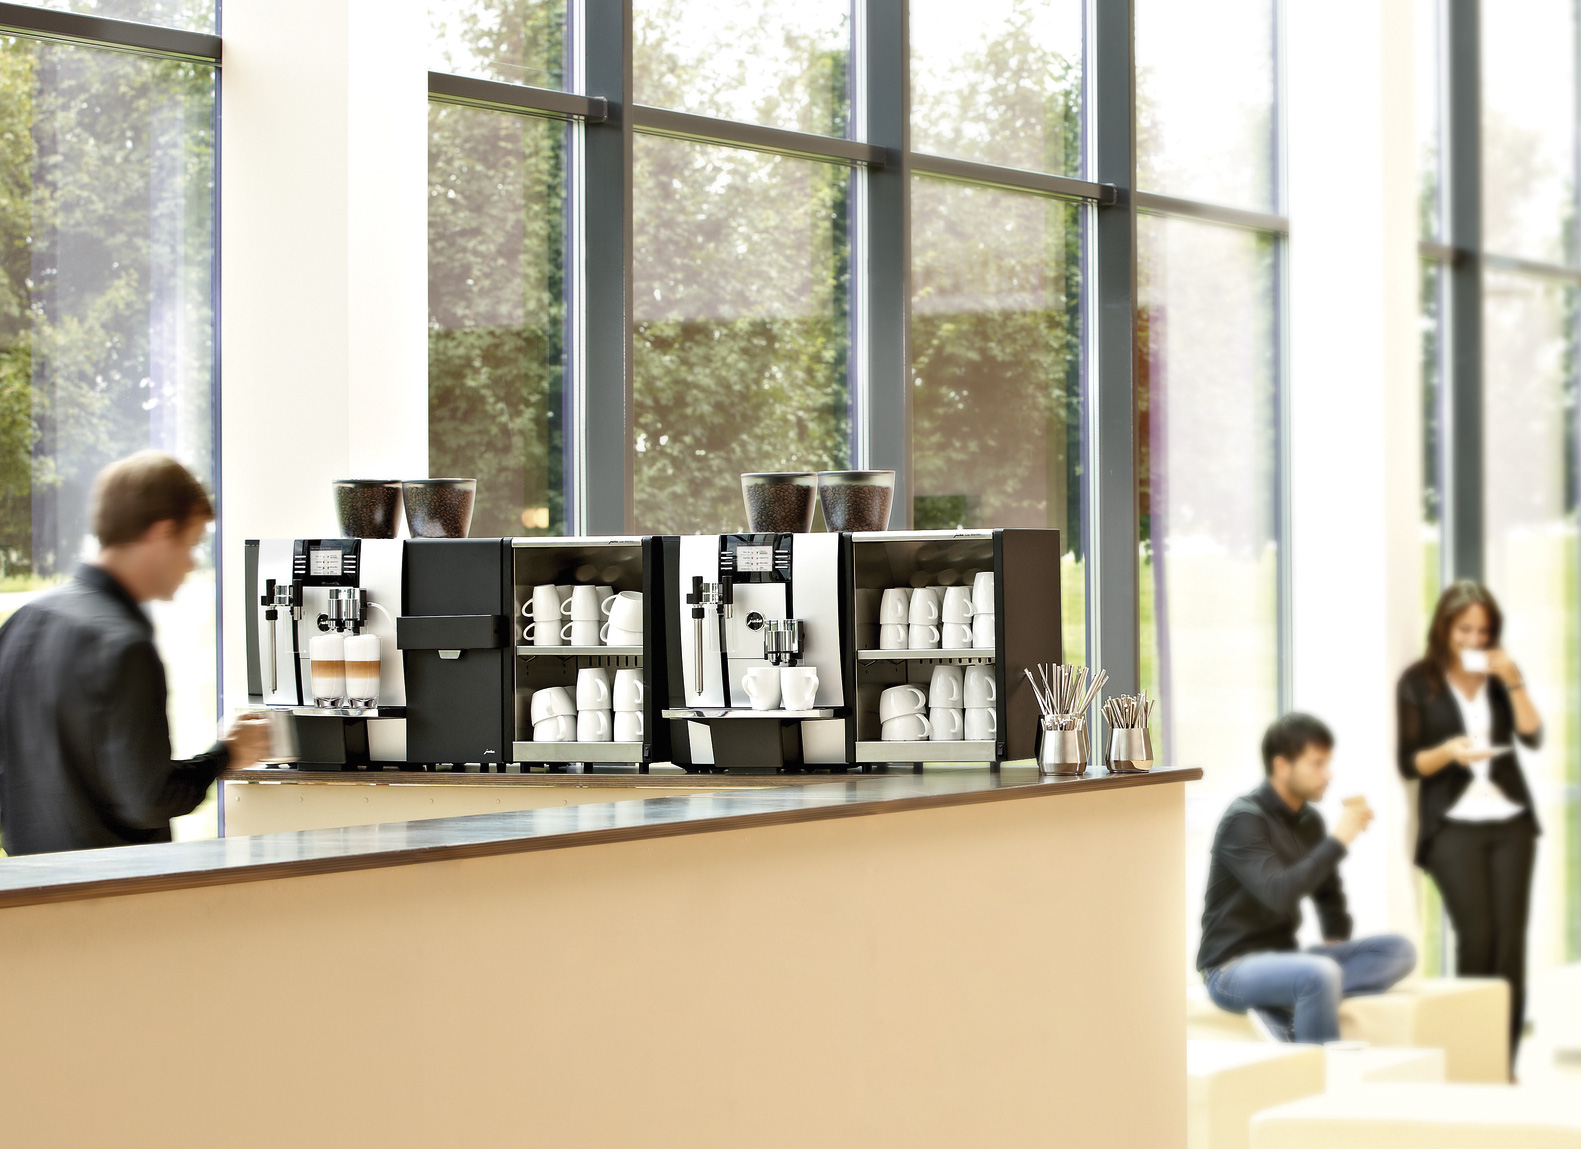 Jura Giga serios coffee machines in an office